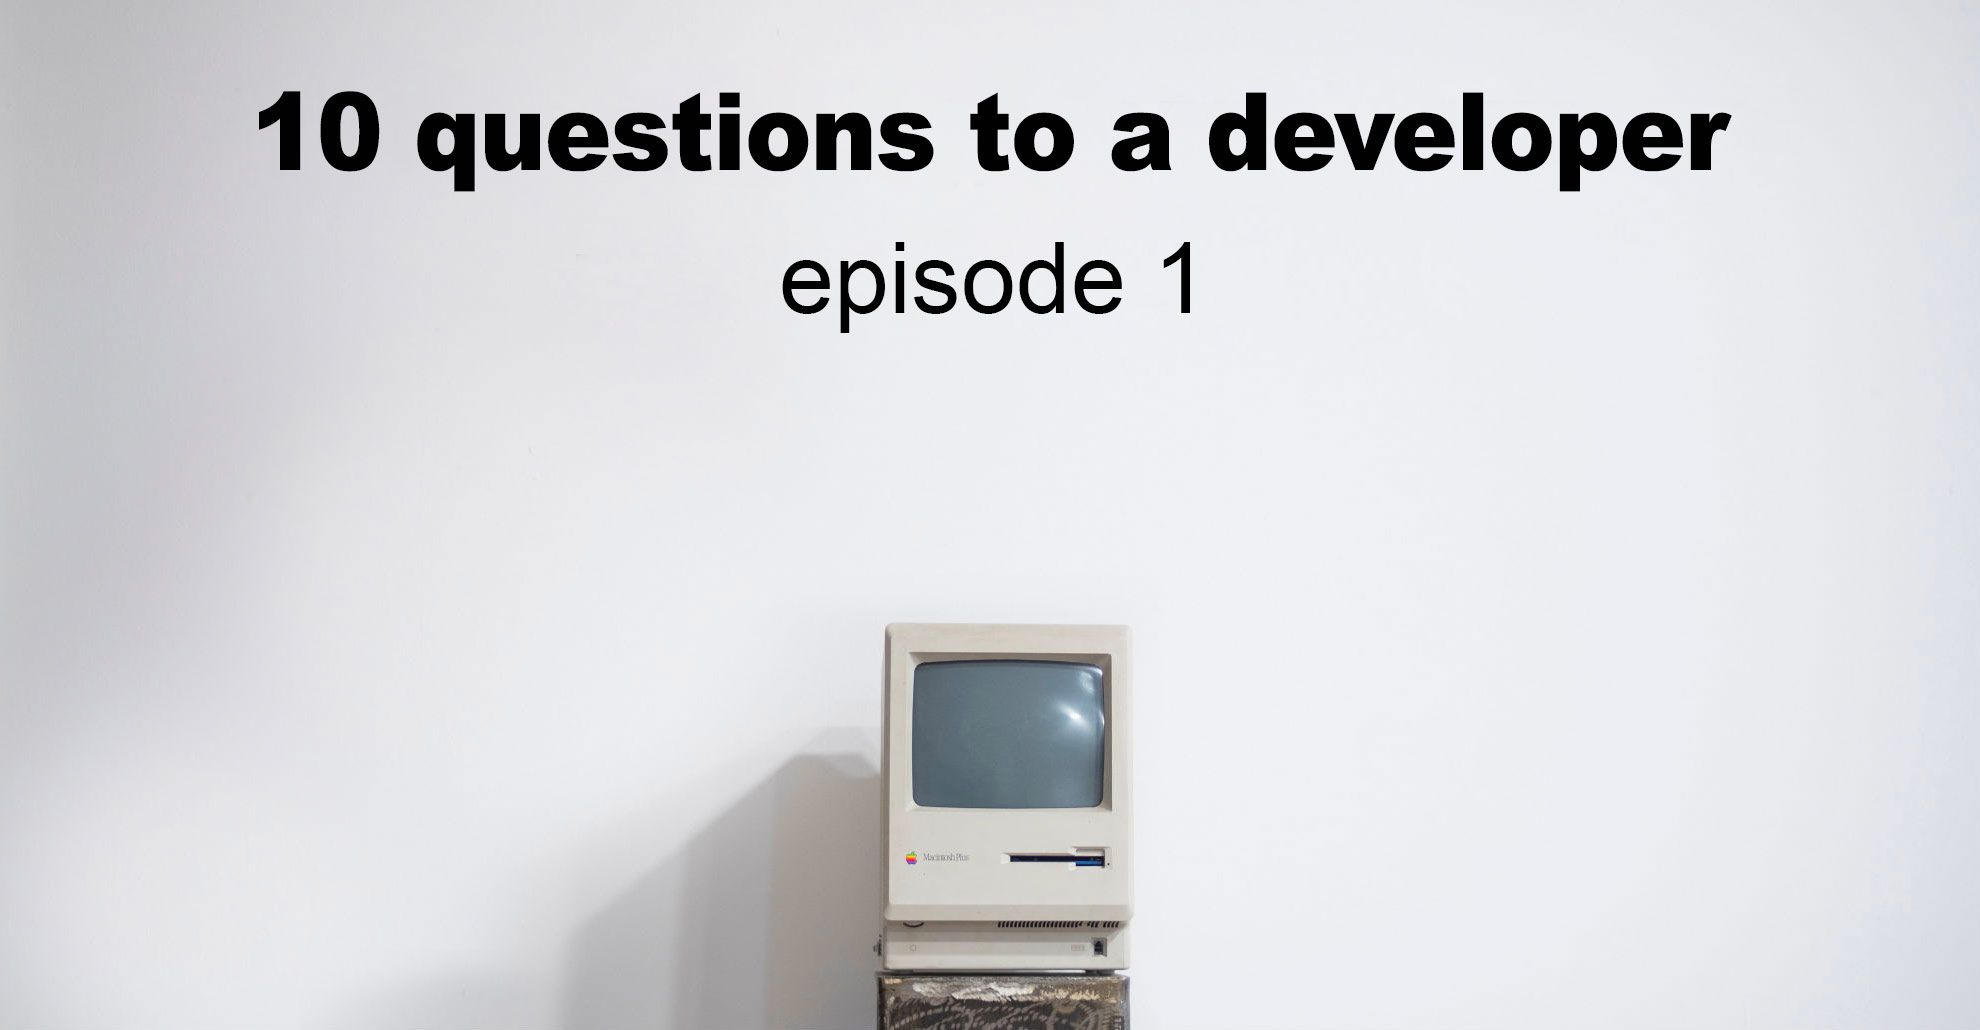 I want to quit my job: 10 questions to a software developer, a pilot episode